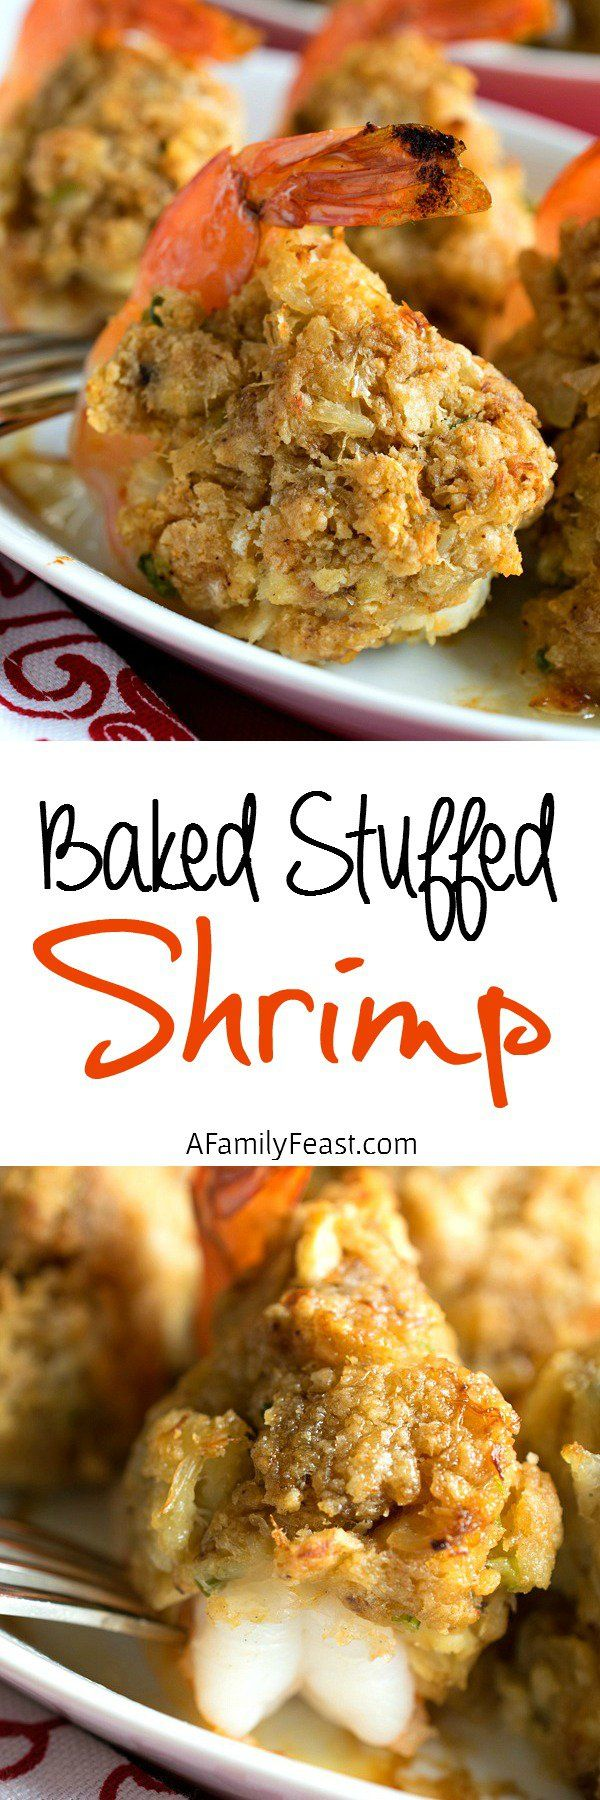 We're showing you how to make restaurant-quality Baked Stuffed Shrimp at home! @peapoddelivers #sponsored